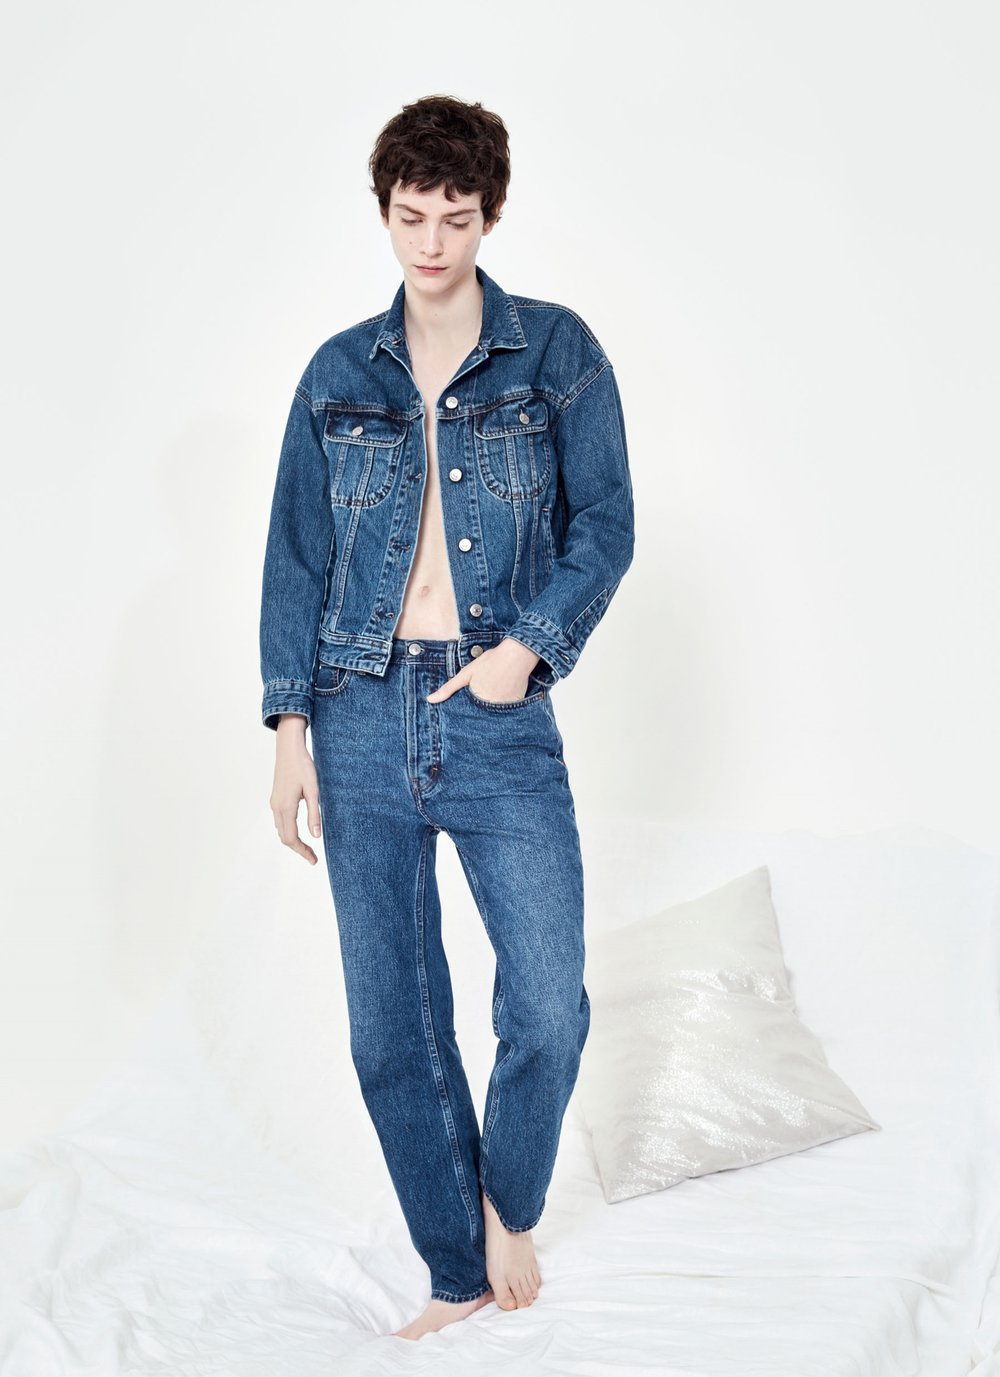 Acne-Studios-bla-konst-denim-ad-campaign-the-impression-03.jpg